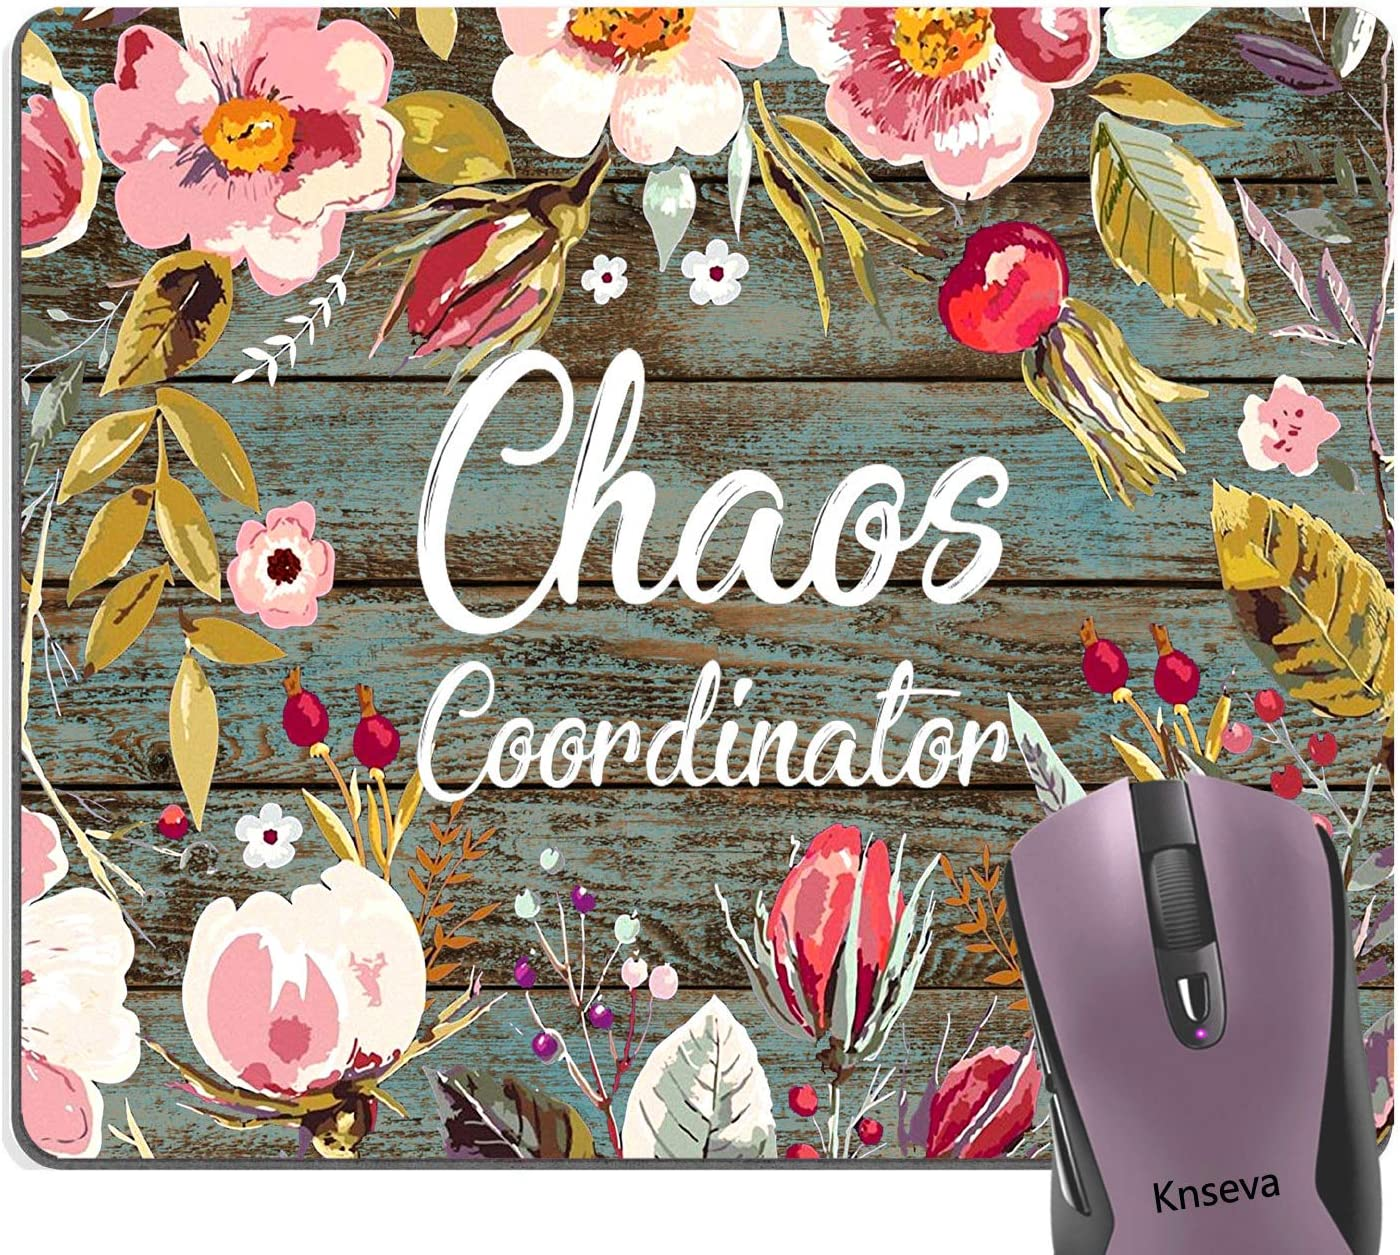 Knseva Chaos Coordinator Funny Quote Mouse Pad Custom, Quotes Vintage Colored Floral Wreath Print Rustic Old Wood Art Inspirational Mouse Pads